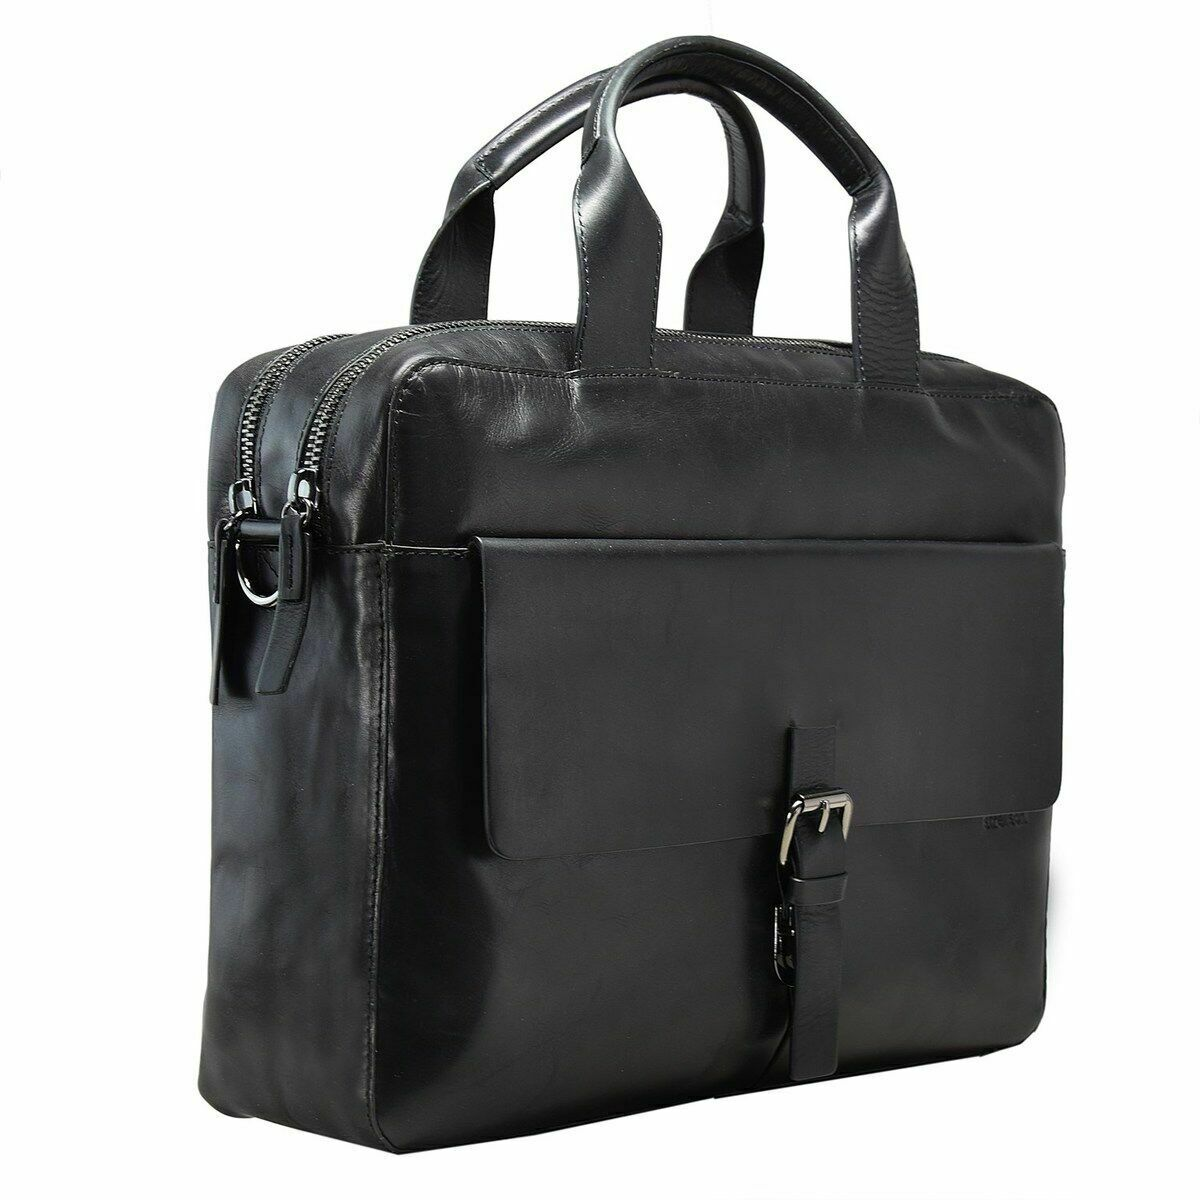 Strellson Scott Leather Briefcase 40 inch Laptop Compartment #O1